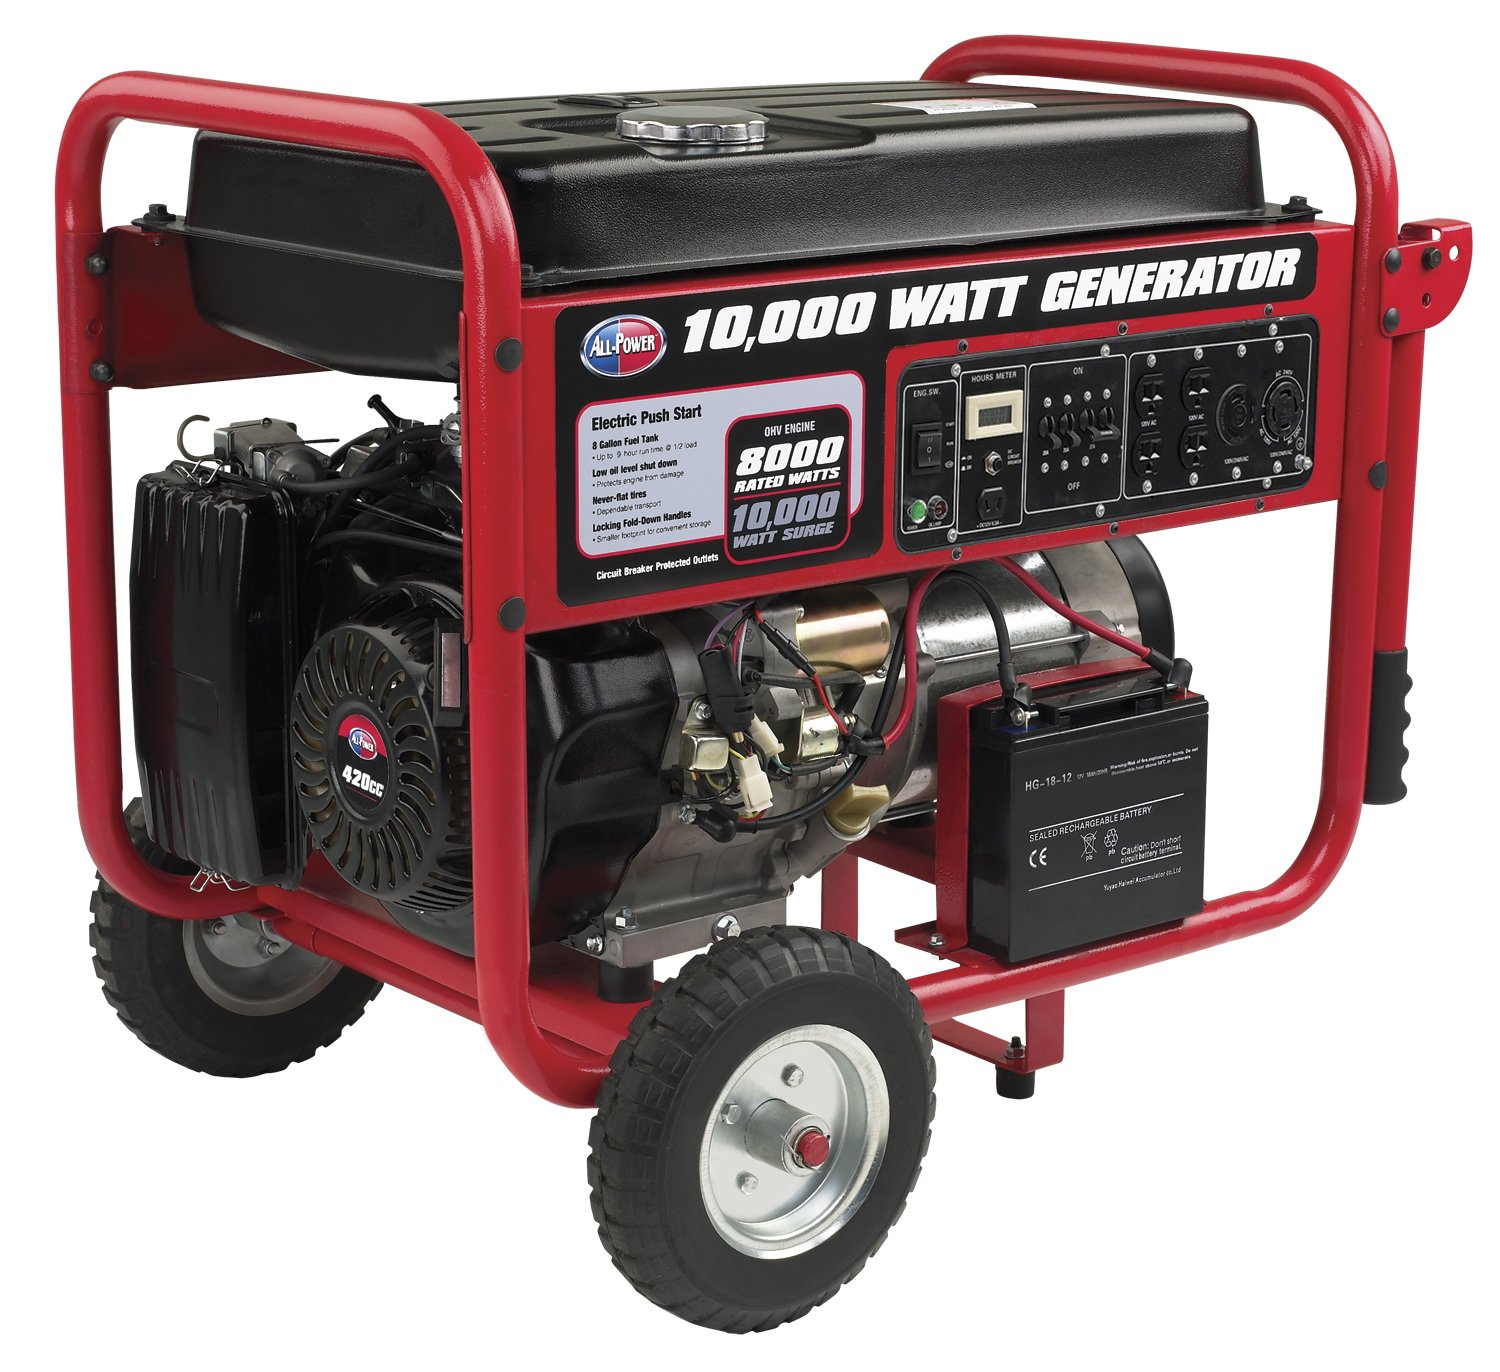 Amazon.com : All Power America APGG10000, 10000W Watt Generator with  Electric Start, Portable Gas Generator for Home Use Emergency Power Backup,  RV Standby, ...